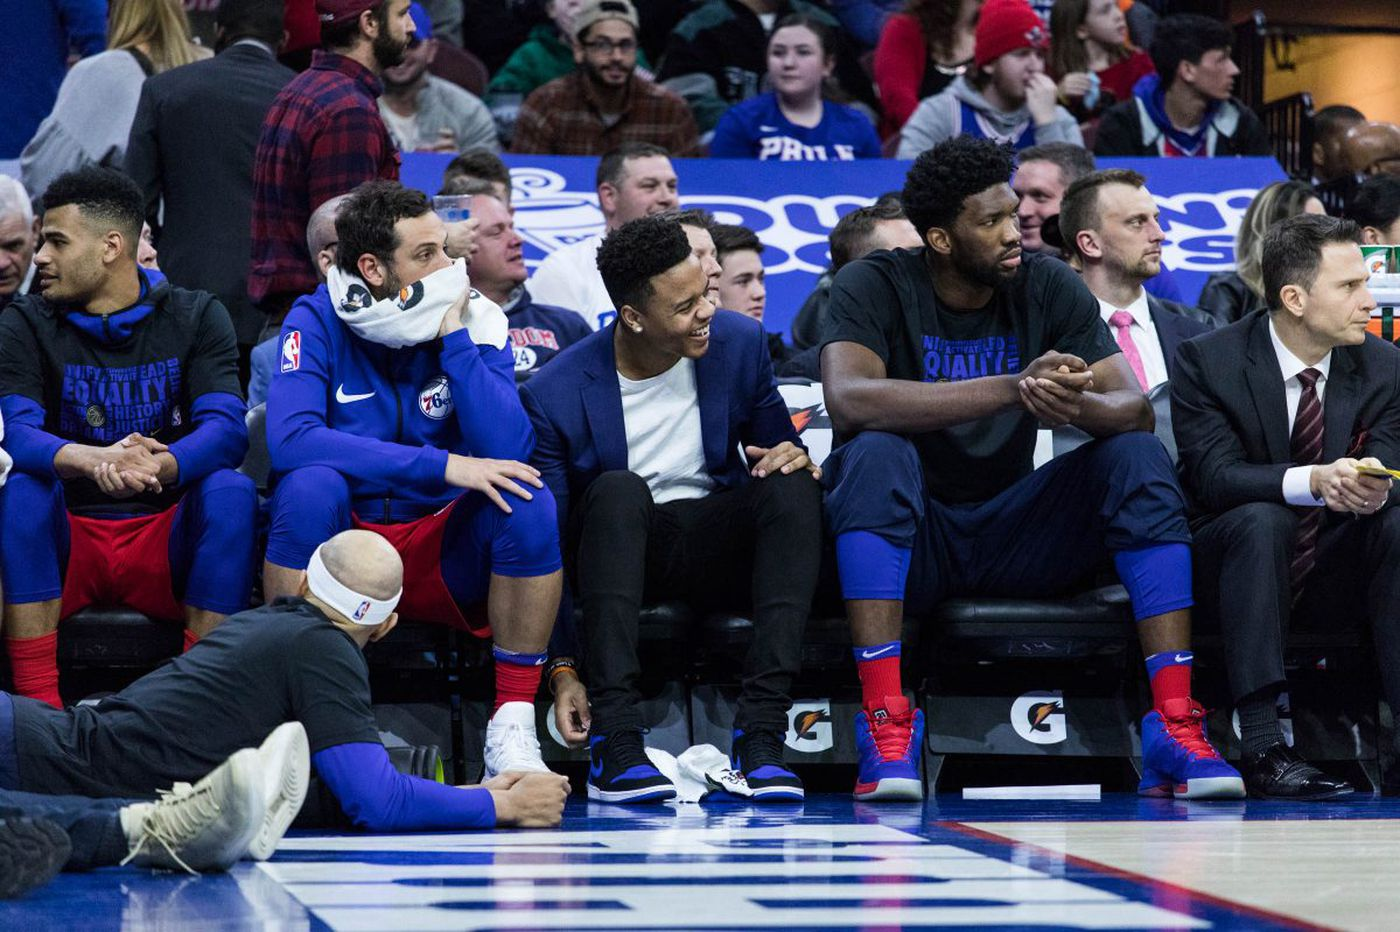 The Sixers have mishandled Markelle Fultz, and it could put his career at risk | Mike Sielski